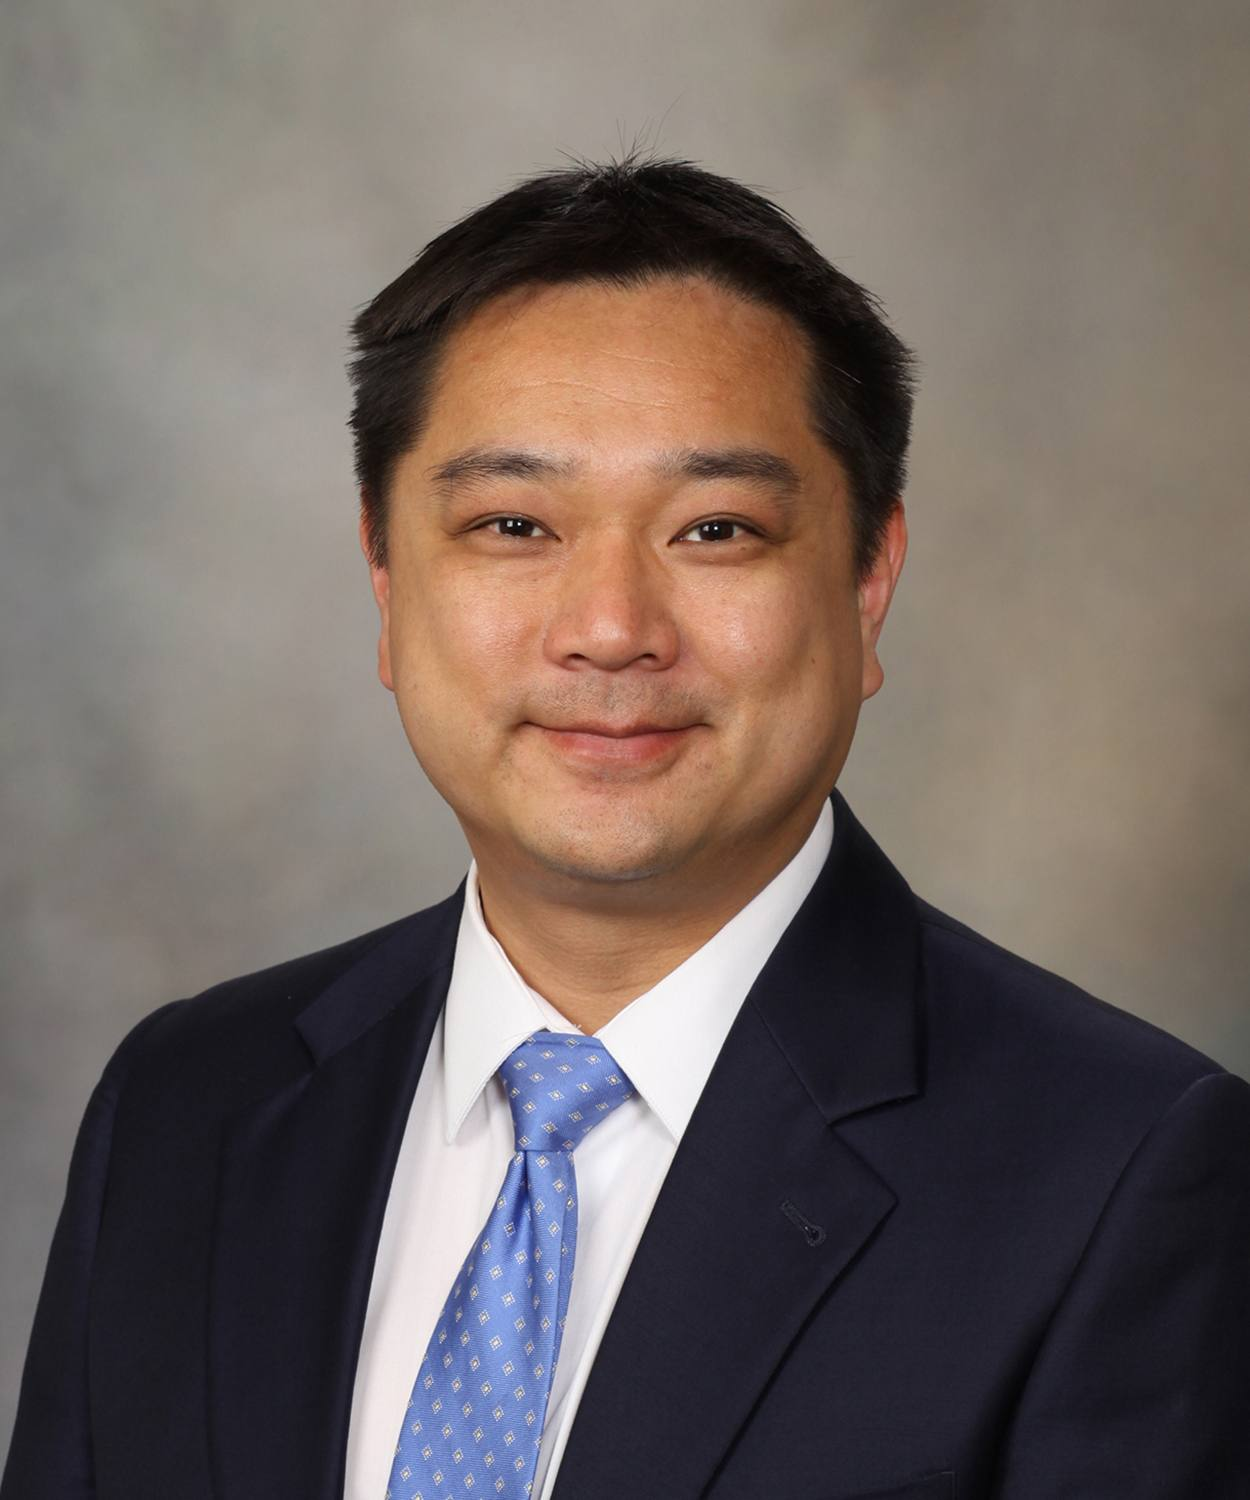 Photo of Peter Lin, M.D.